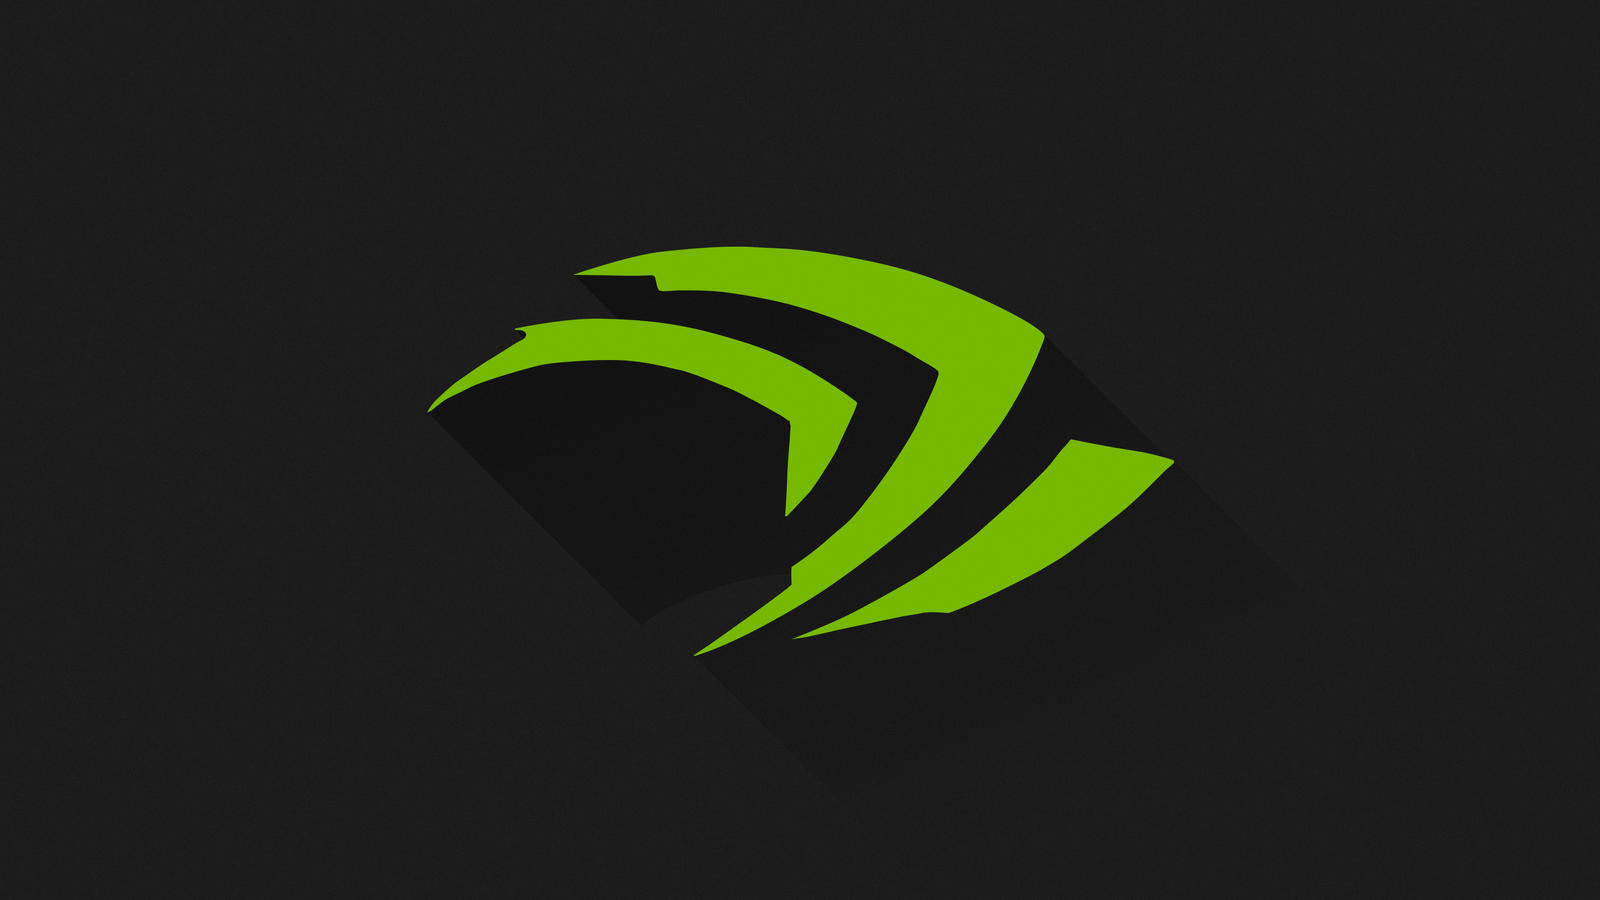 Nvidia Geforce Wallpaper | www.imgkid.com - The Image Kid ...